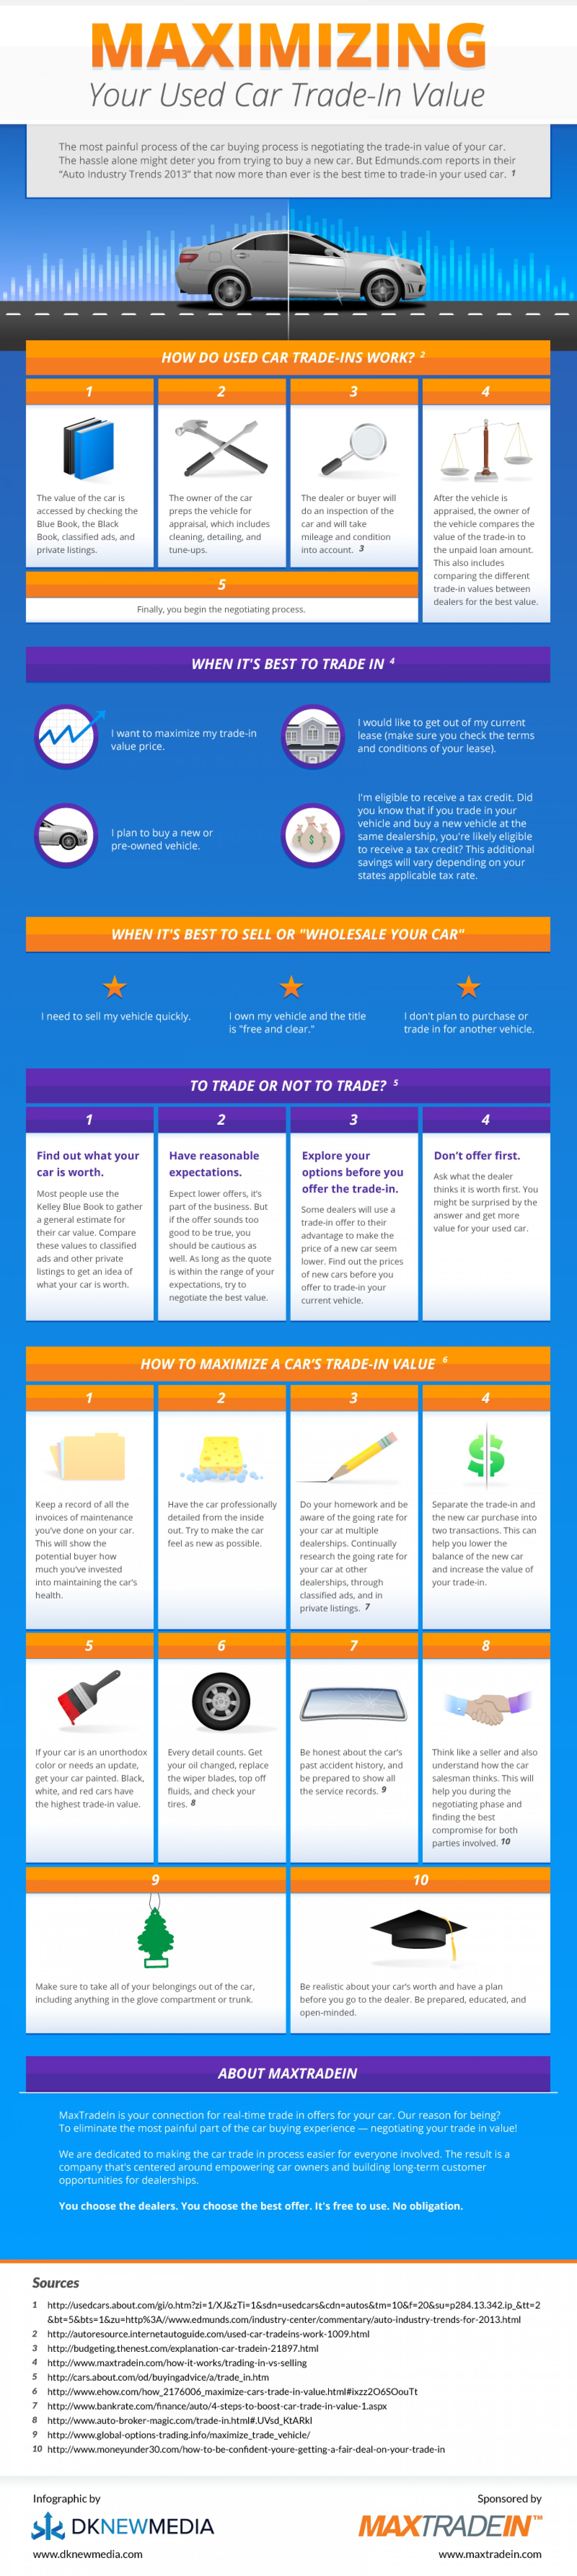 maximizing your used car trade in value infographic